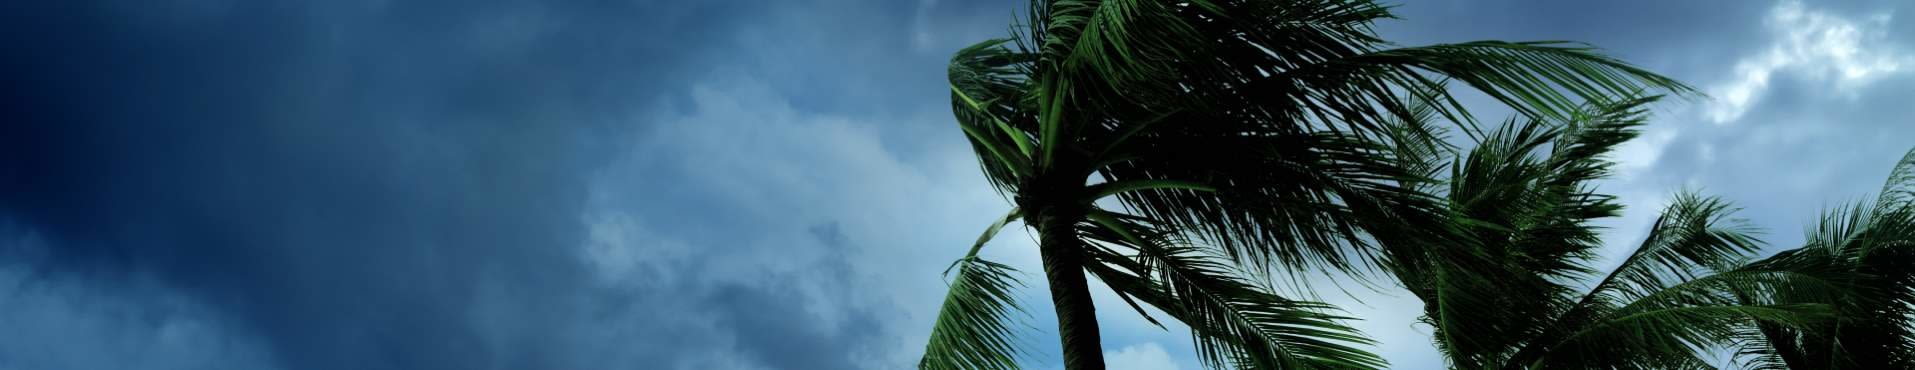 Shine Lawyers | Palm trees blowing in a storm | Shine Lawyers